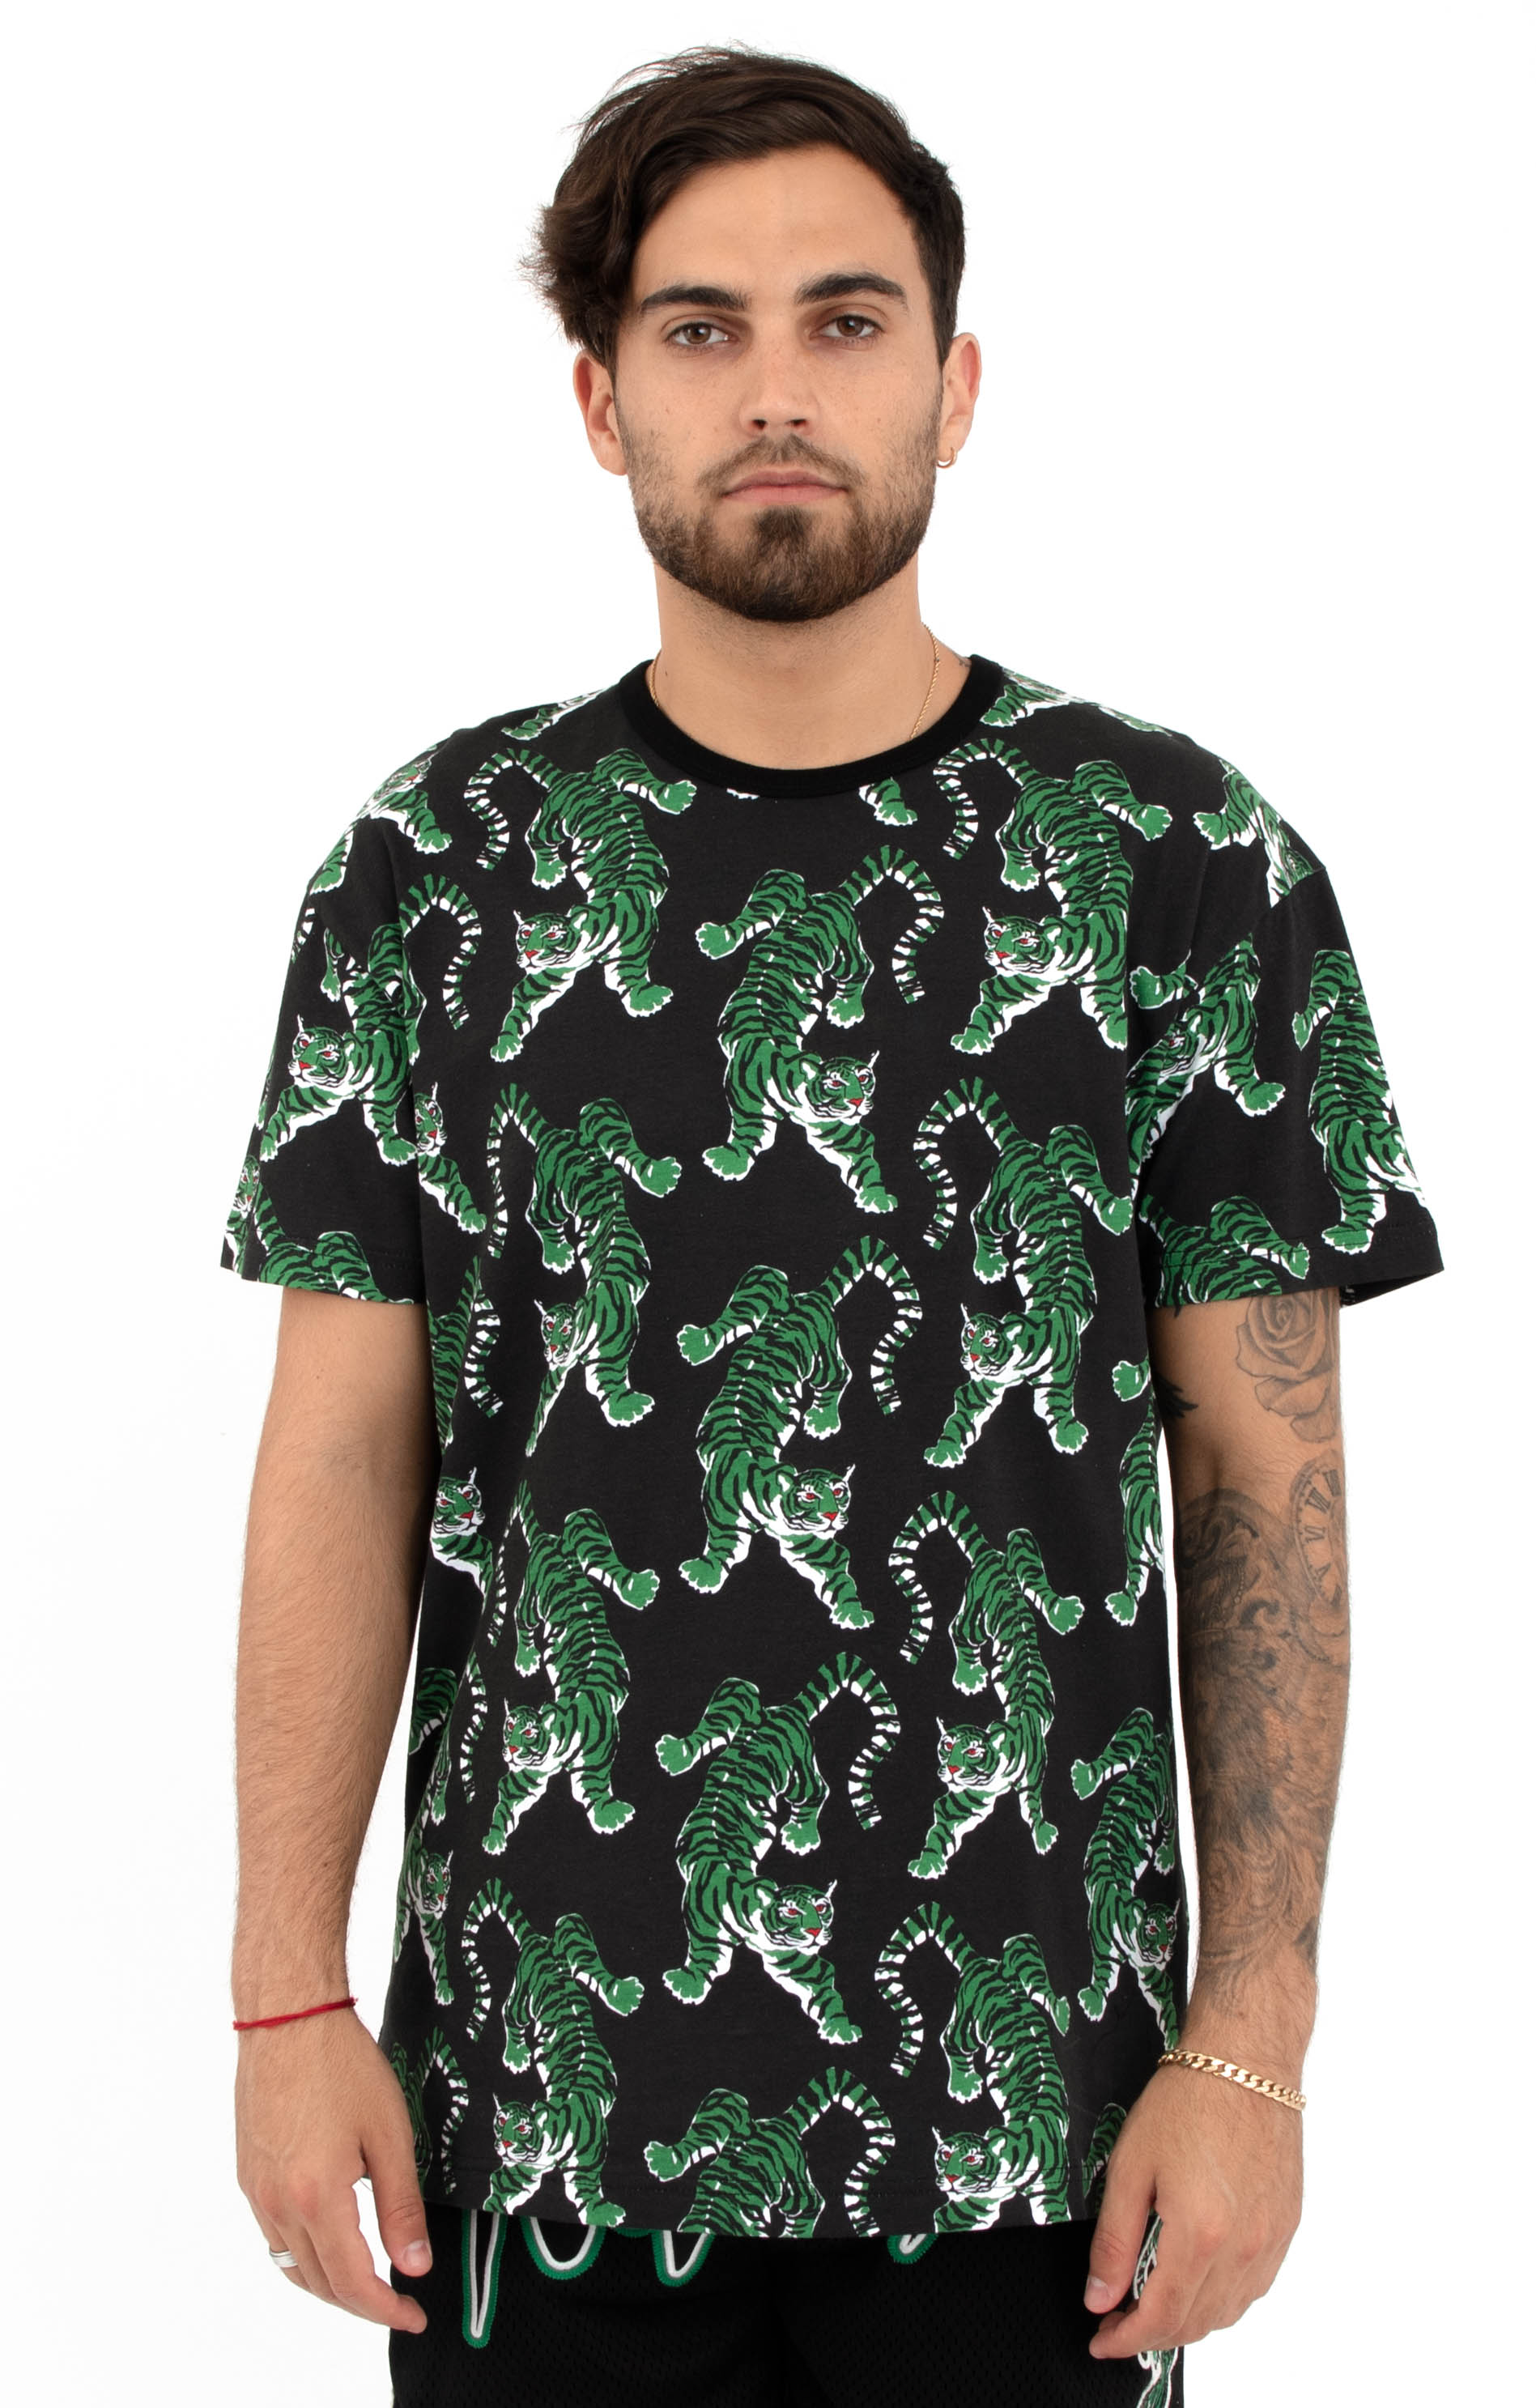 10 Deep, Top Of The Chain Print T-Shirt - Black